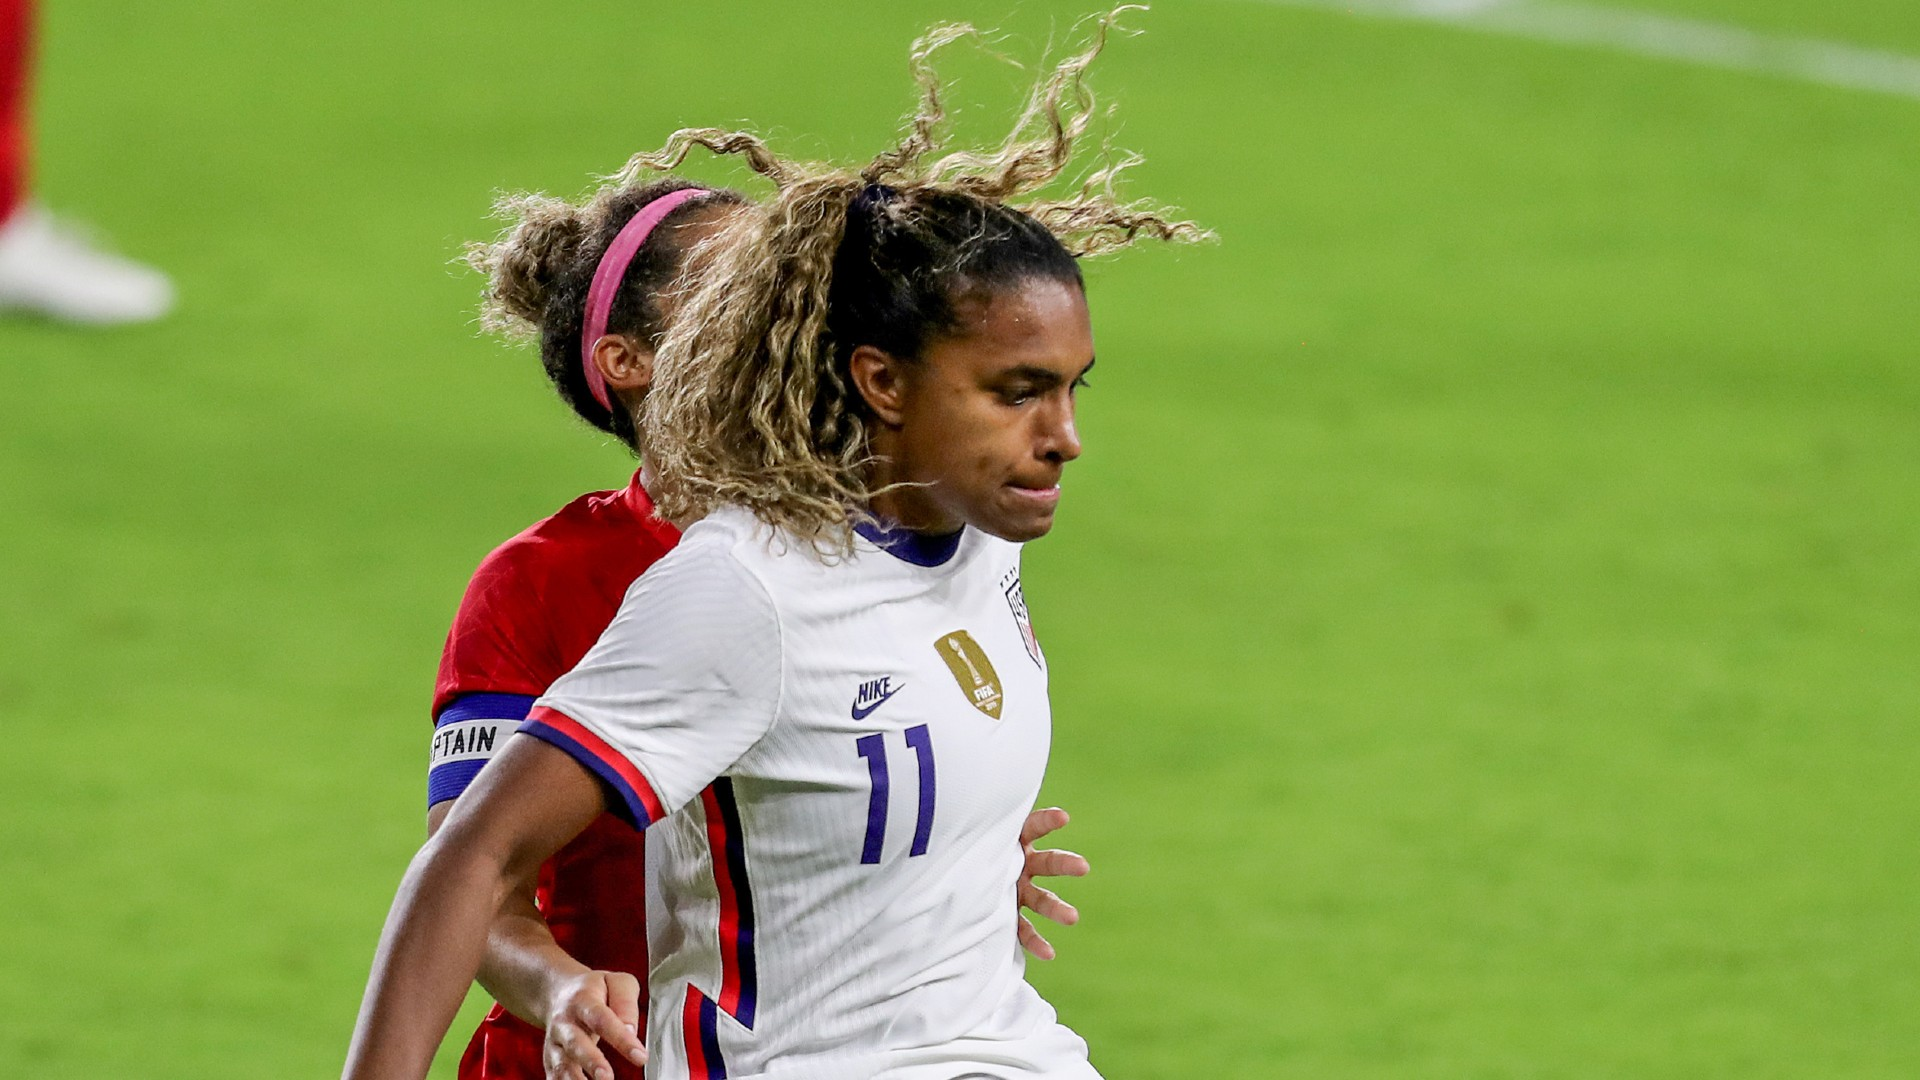 USWNT striker Macario was ruled out of the Swedish and French matches due to Covid restrictions